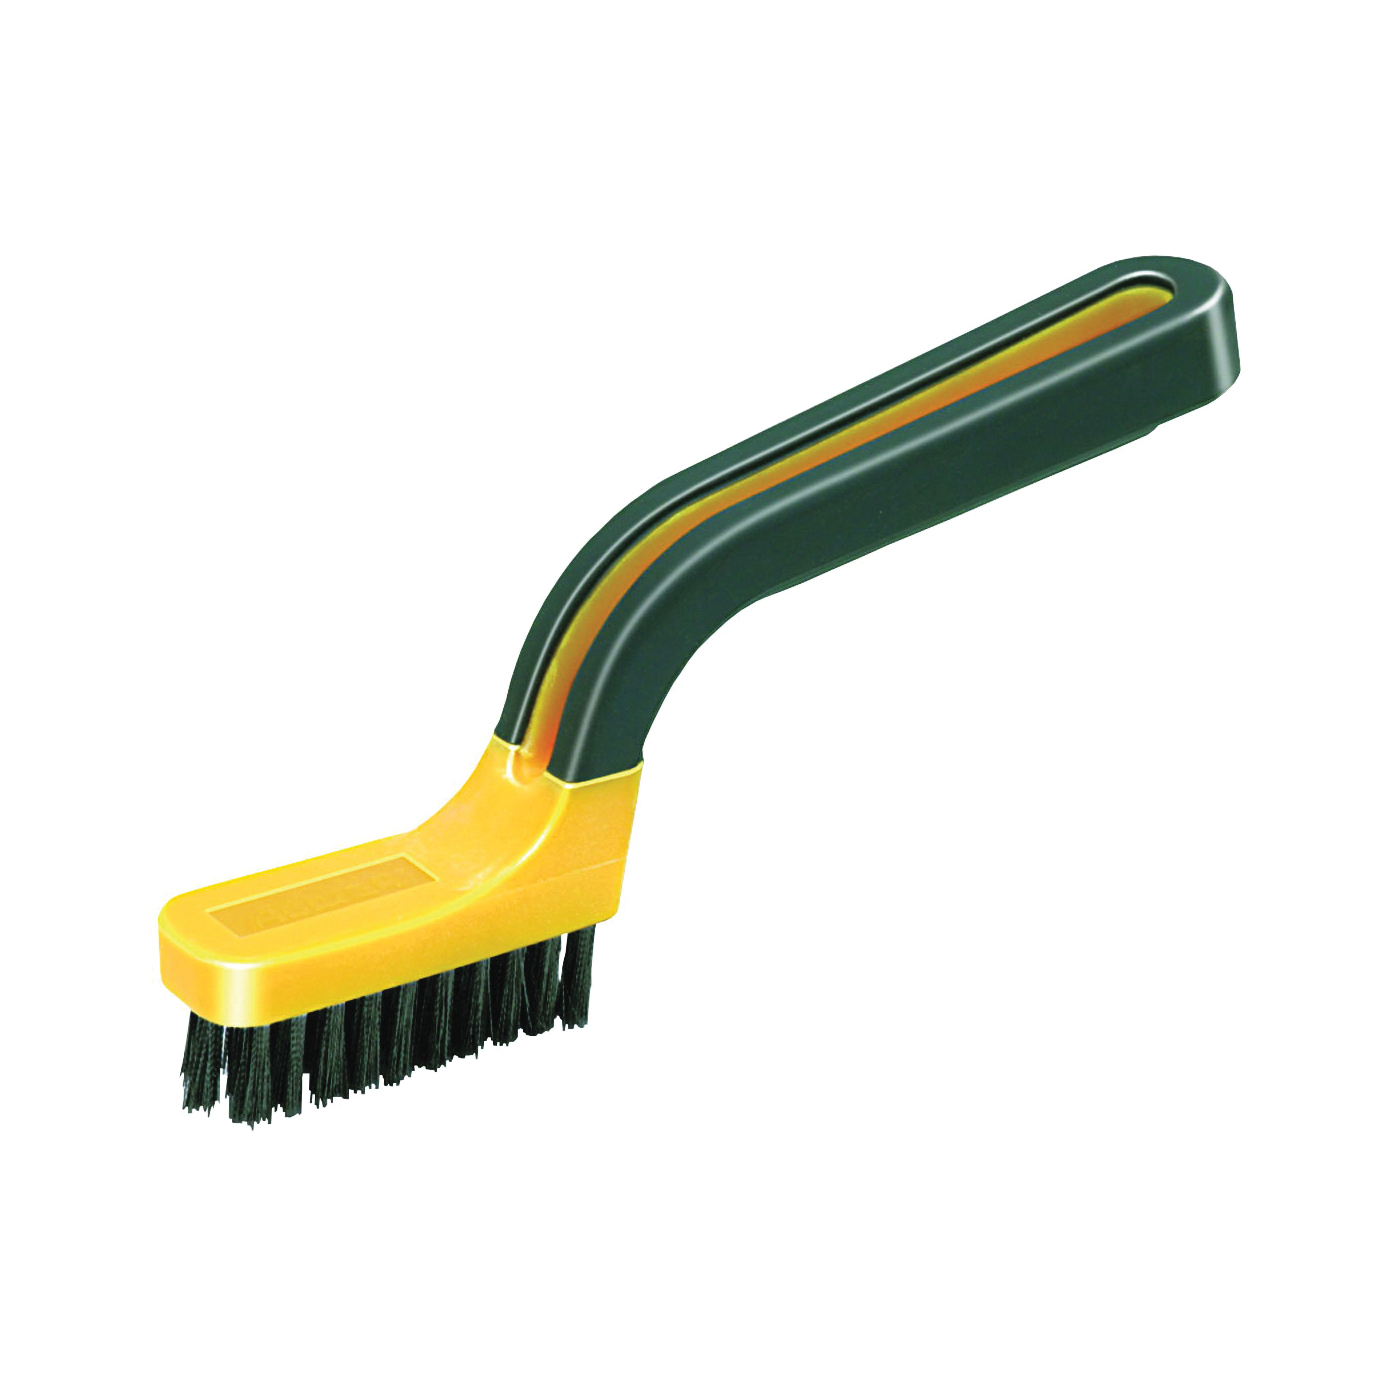 Picture of ALLWAY TOOLS GB Grout Brush, 7 in L Blade, 3/4 in W Blade, Nylon Blade, Soft-Grip Handle